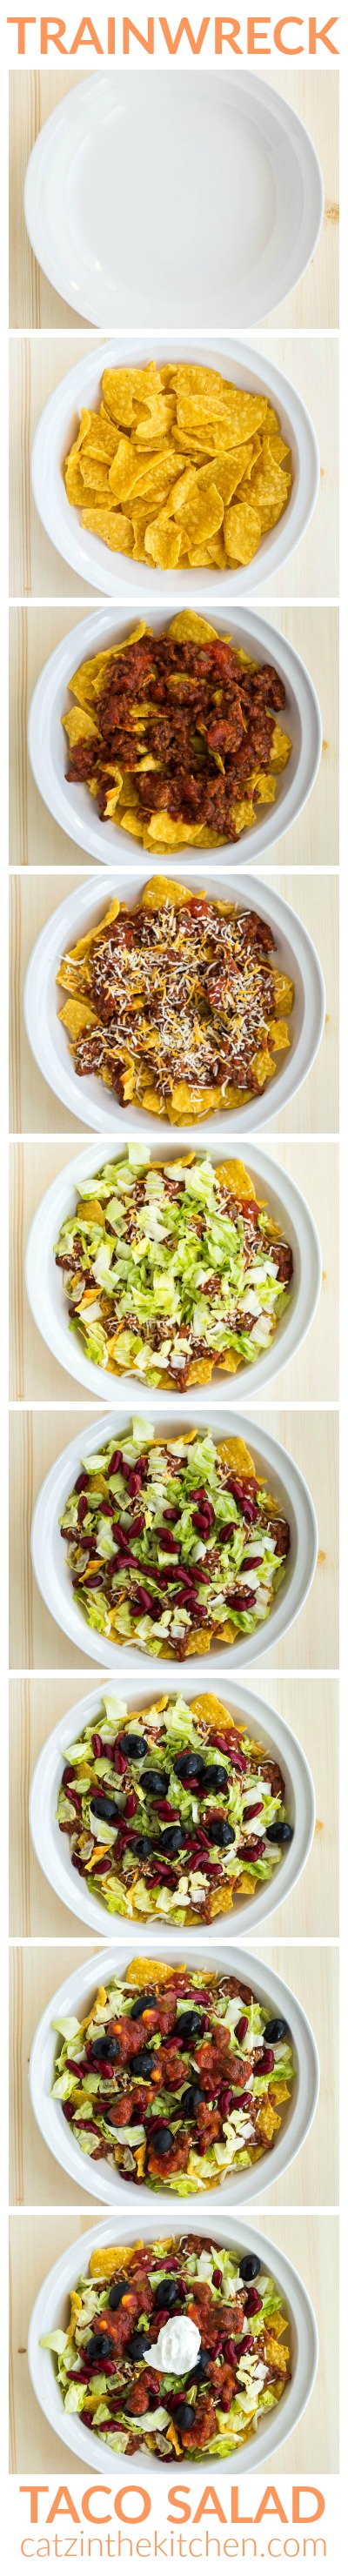 Trainwreck Taco Salad | Catz in the Kitchen | catzinthekitchen.com | #trainwreck #salad #taco #recipe